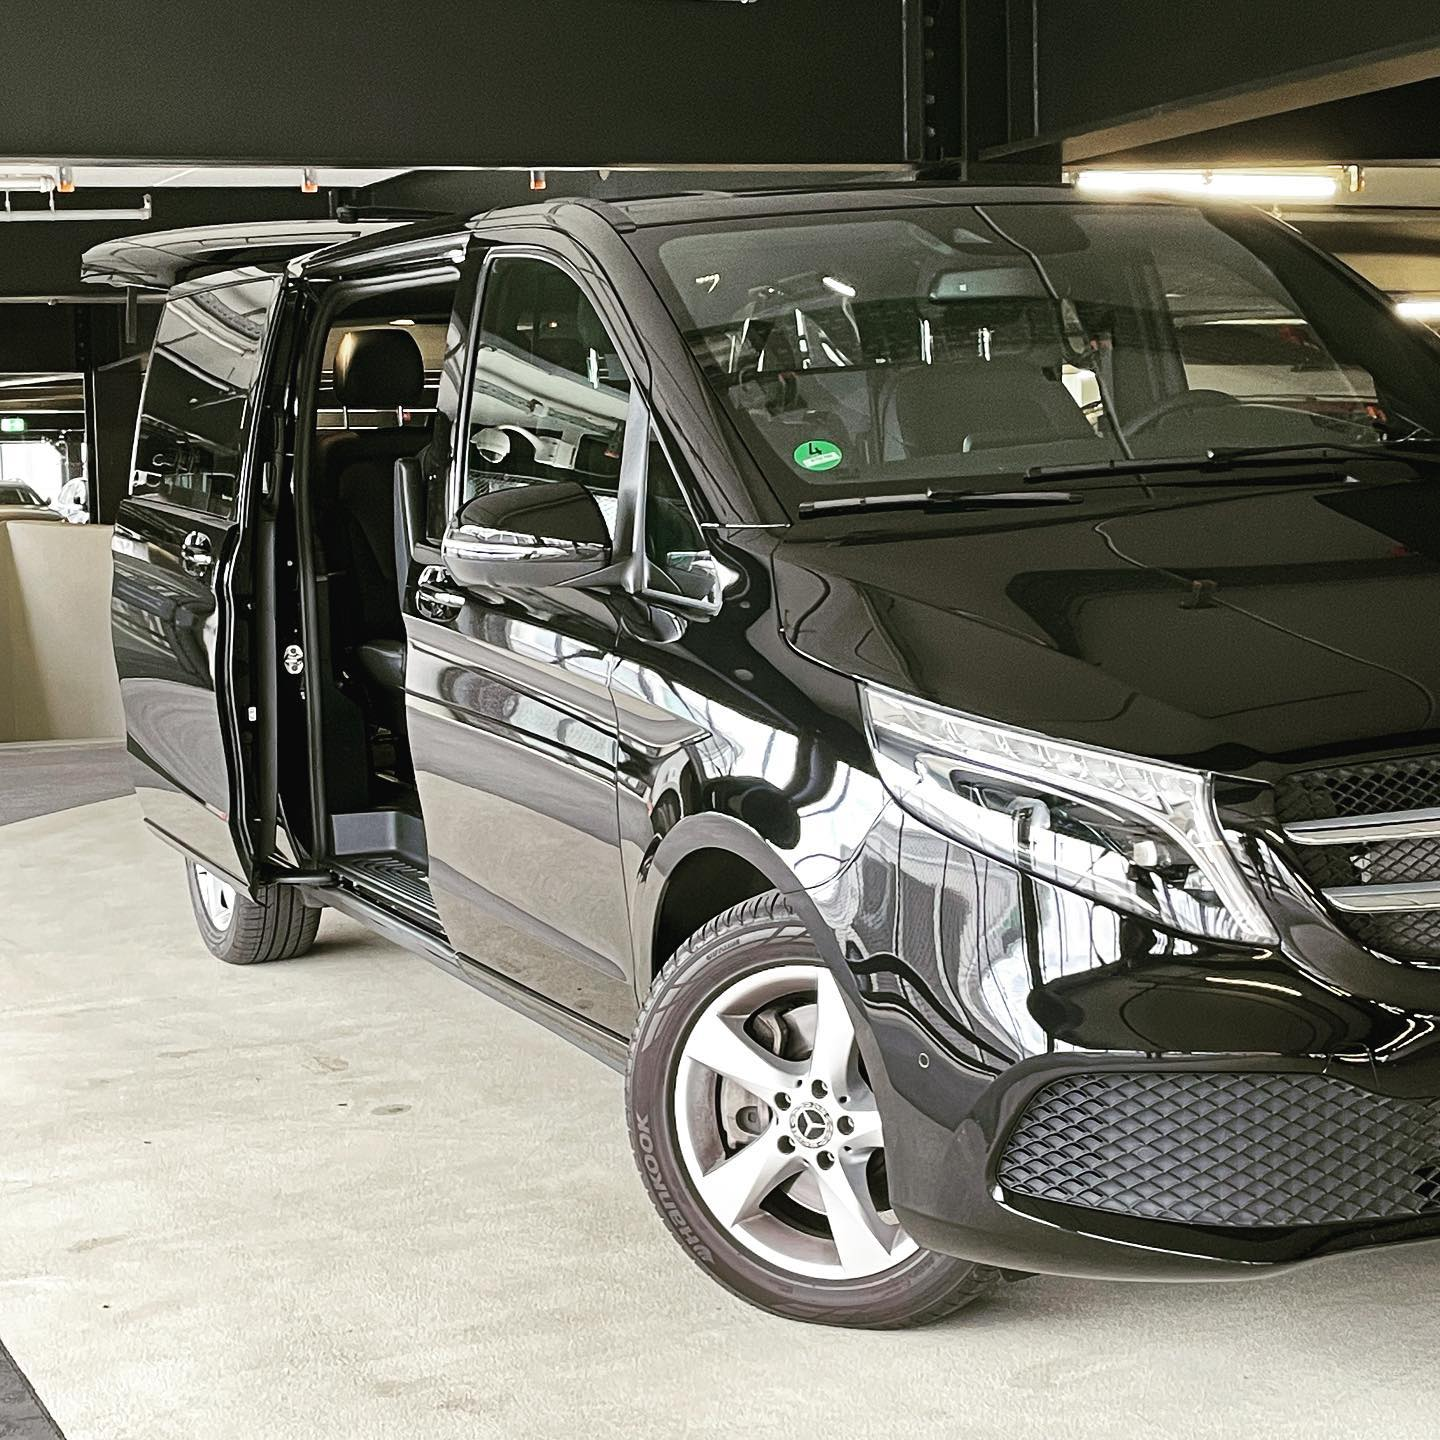 Pick up for two passengers with huge luggage at BER VIP Lounge #limousineservice #berlin #berairport #viplounge